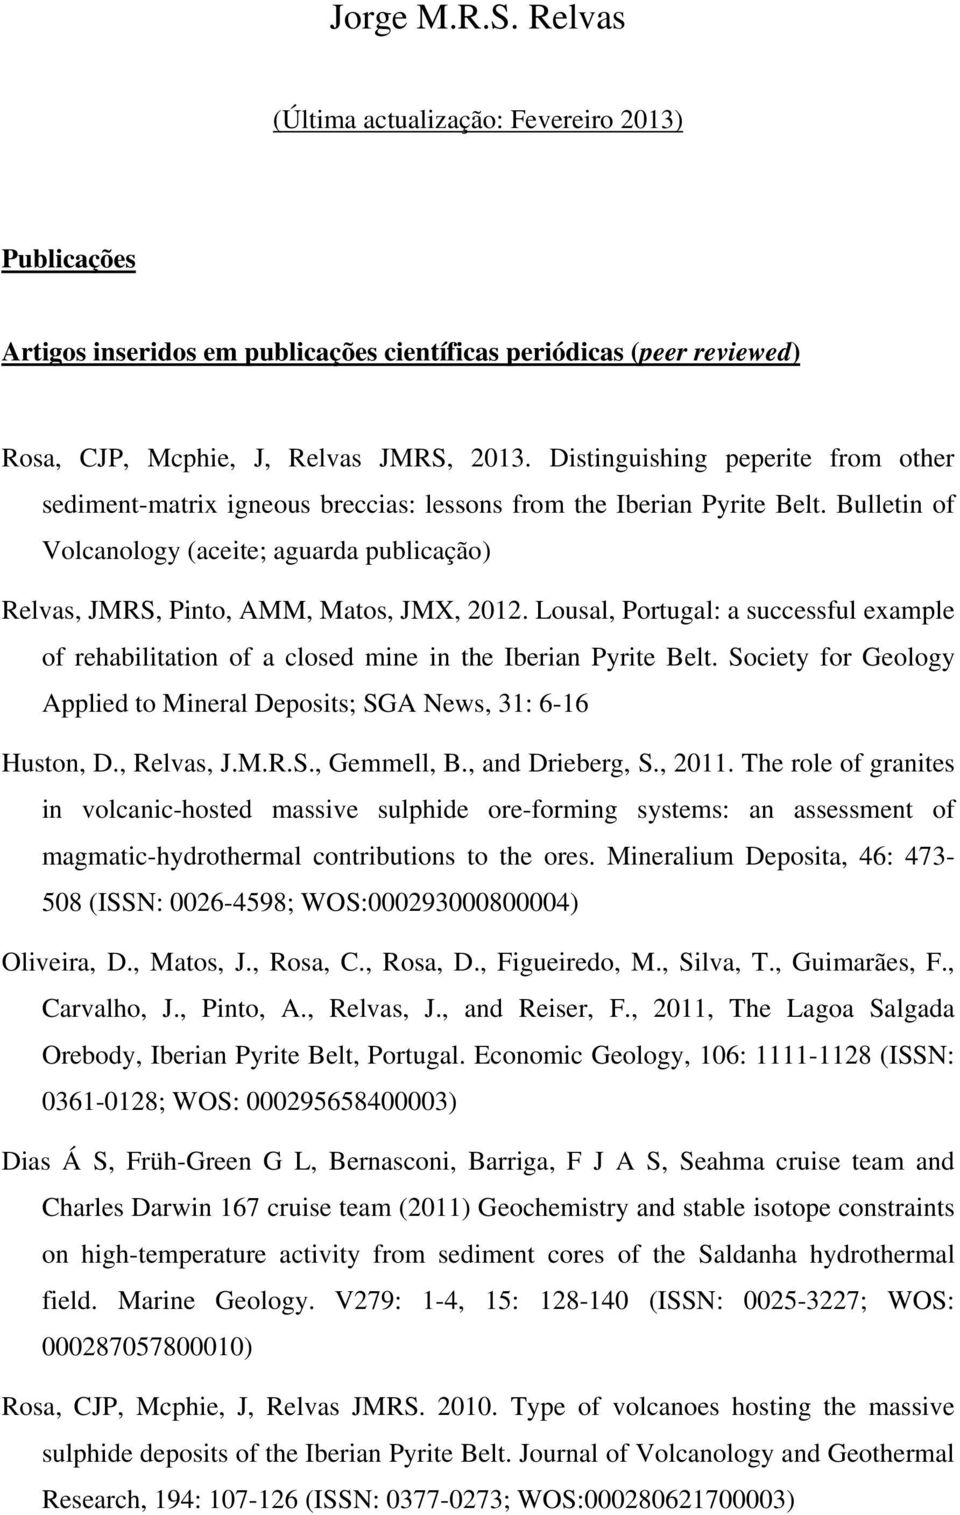 Bulletin of Volcanology (aceite; aguarda publicação) Relvas, JMRS, Pinto, AMM, Matos, JMX, 2012. Lousal, Portugal: a successful example of rehabilitation of a closed mine in the Iberian Pyrite Belt.